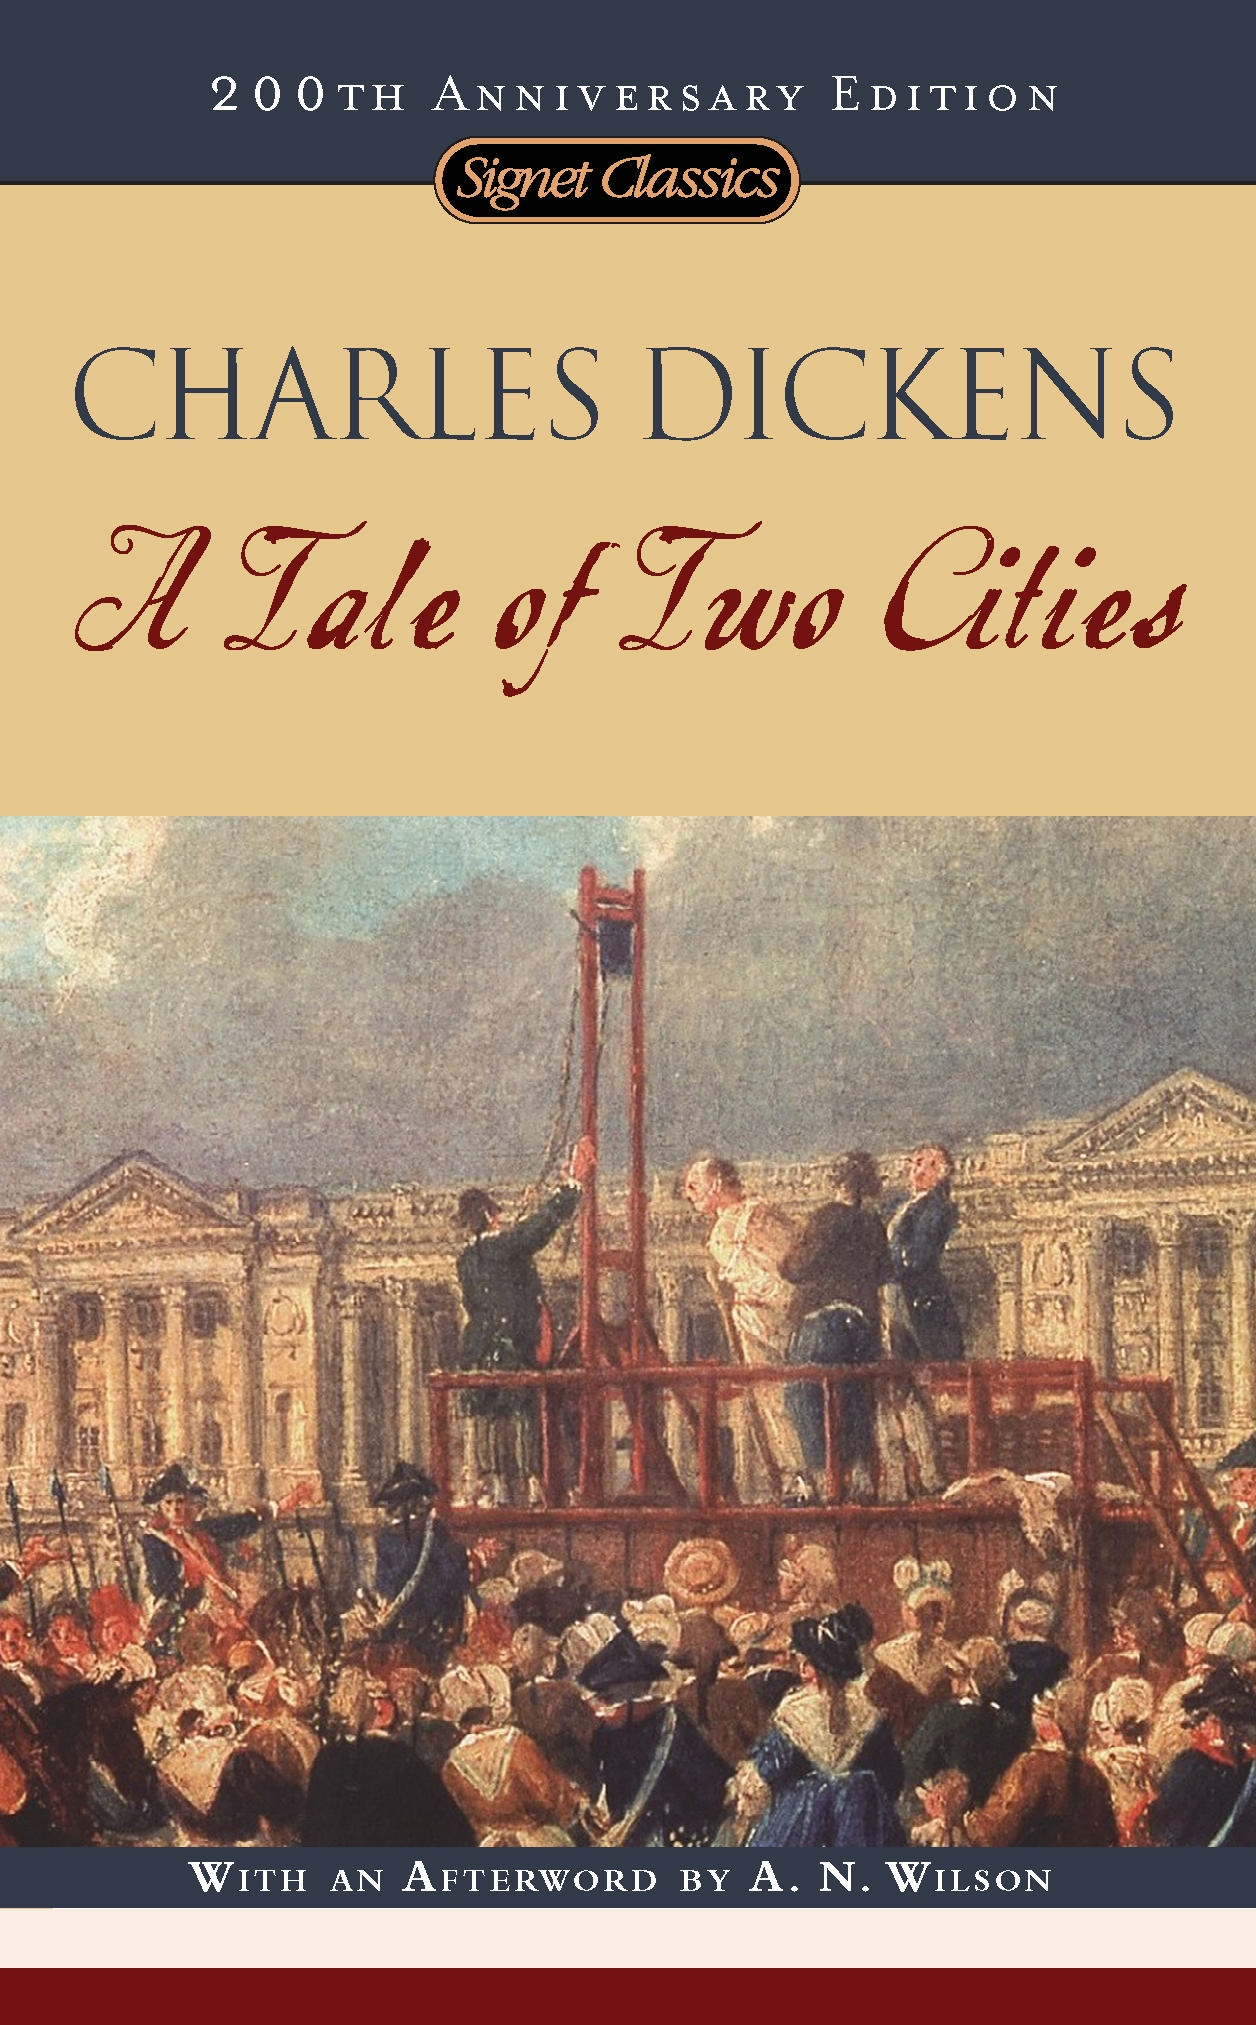 a review of charles dickens a tale of two cities Was this review helpful yes no | report this 10 /10 i read the book a tale of two cities, by charles dickens, in ninth grade, and to my extreme surprise bringing to life the great charles dickens tale of the french revolution.